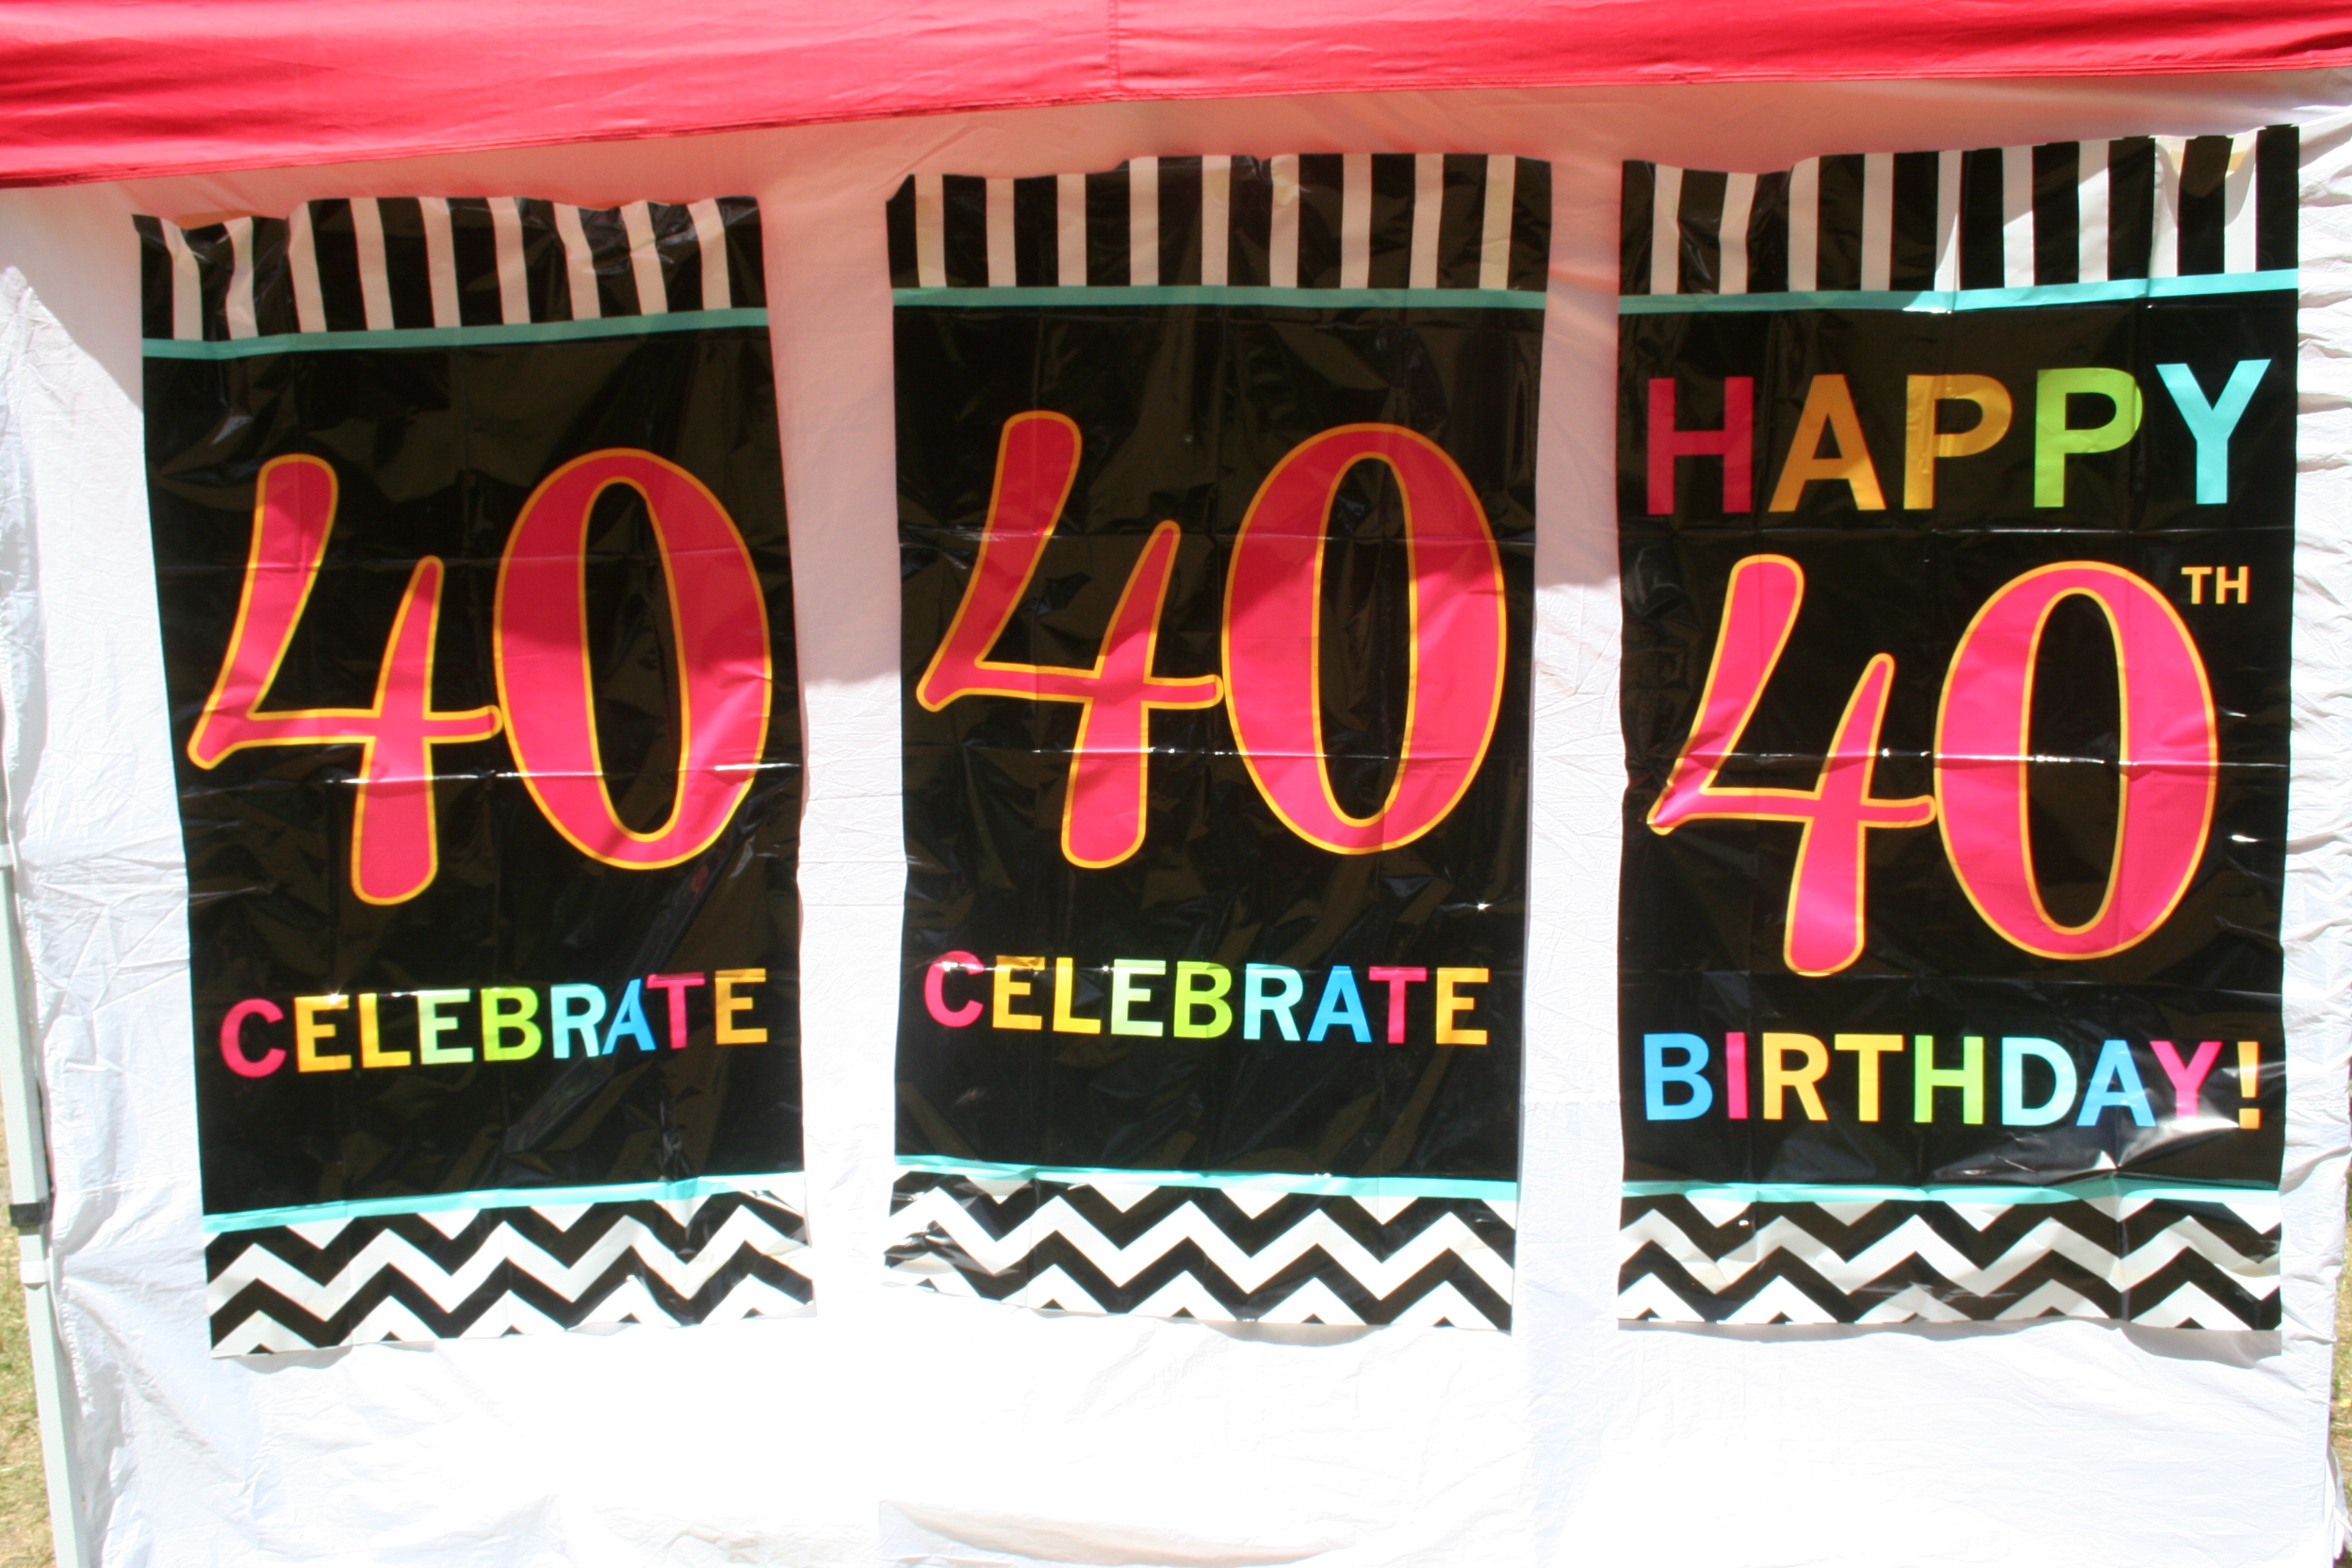 We Celebrated 40 Years of Changing Lives at This Year